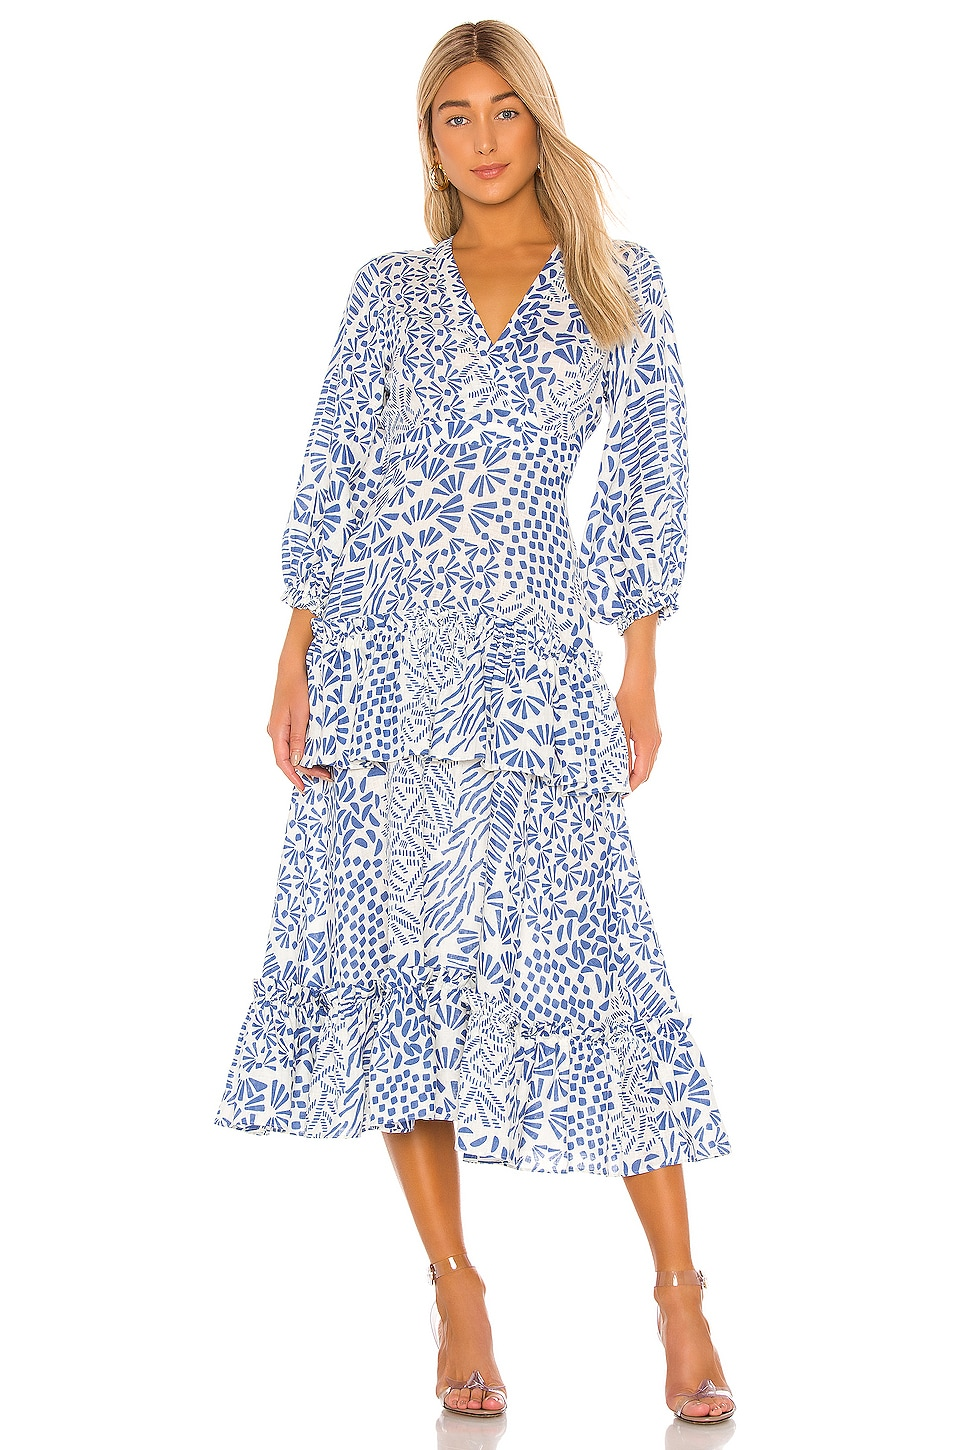 Alexis Tereasa Dress in Blue Abstract